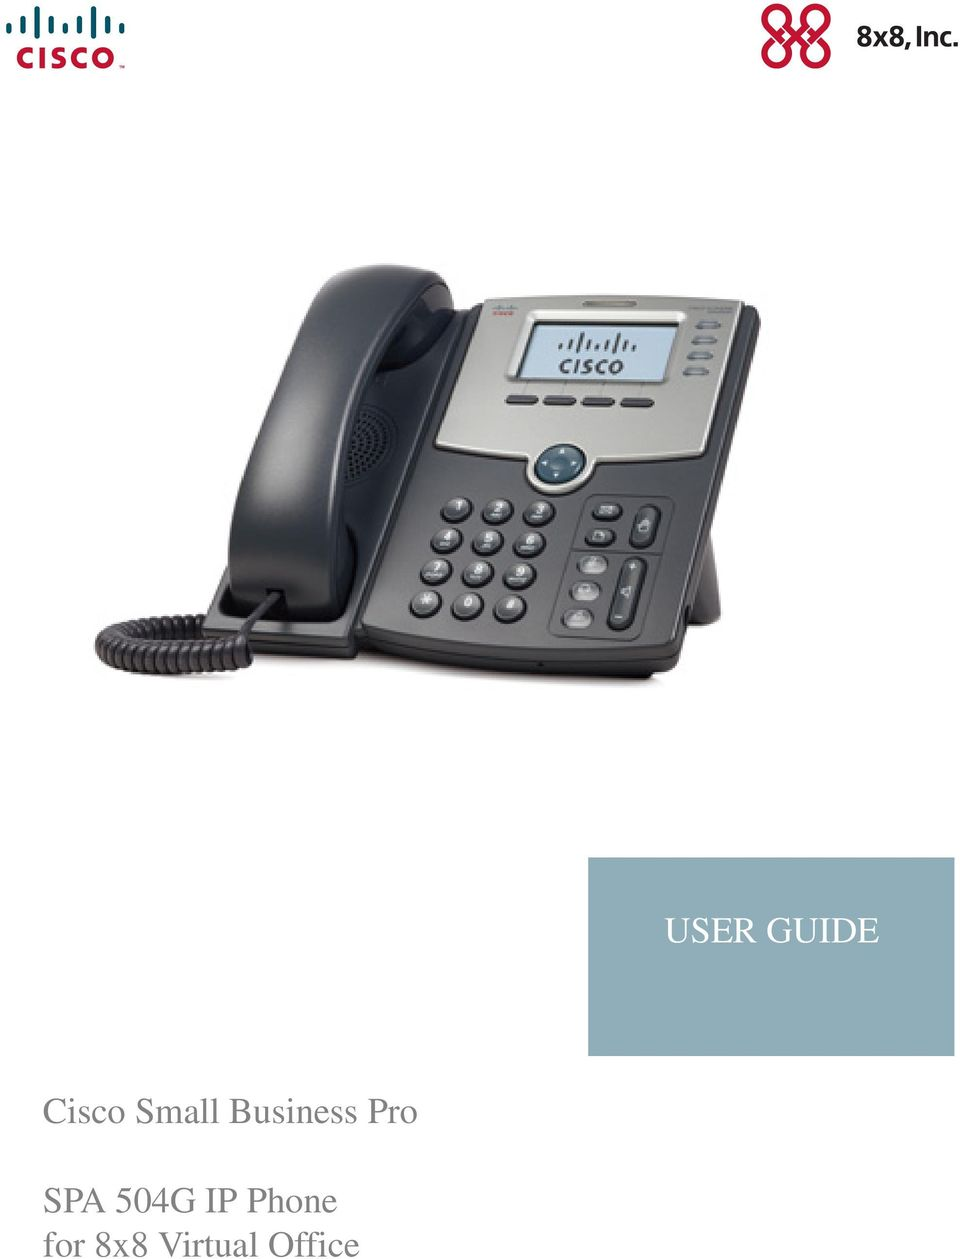 SPA 504G IP Phone